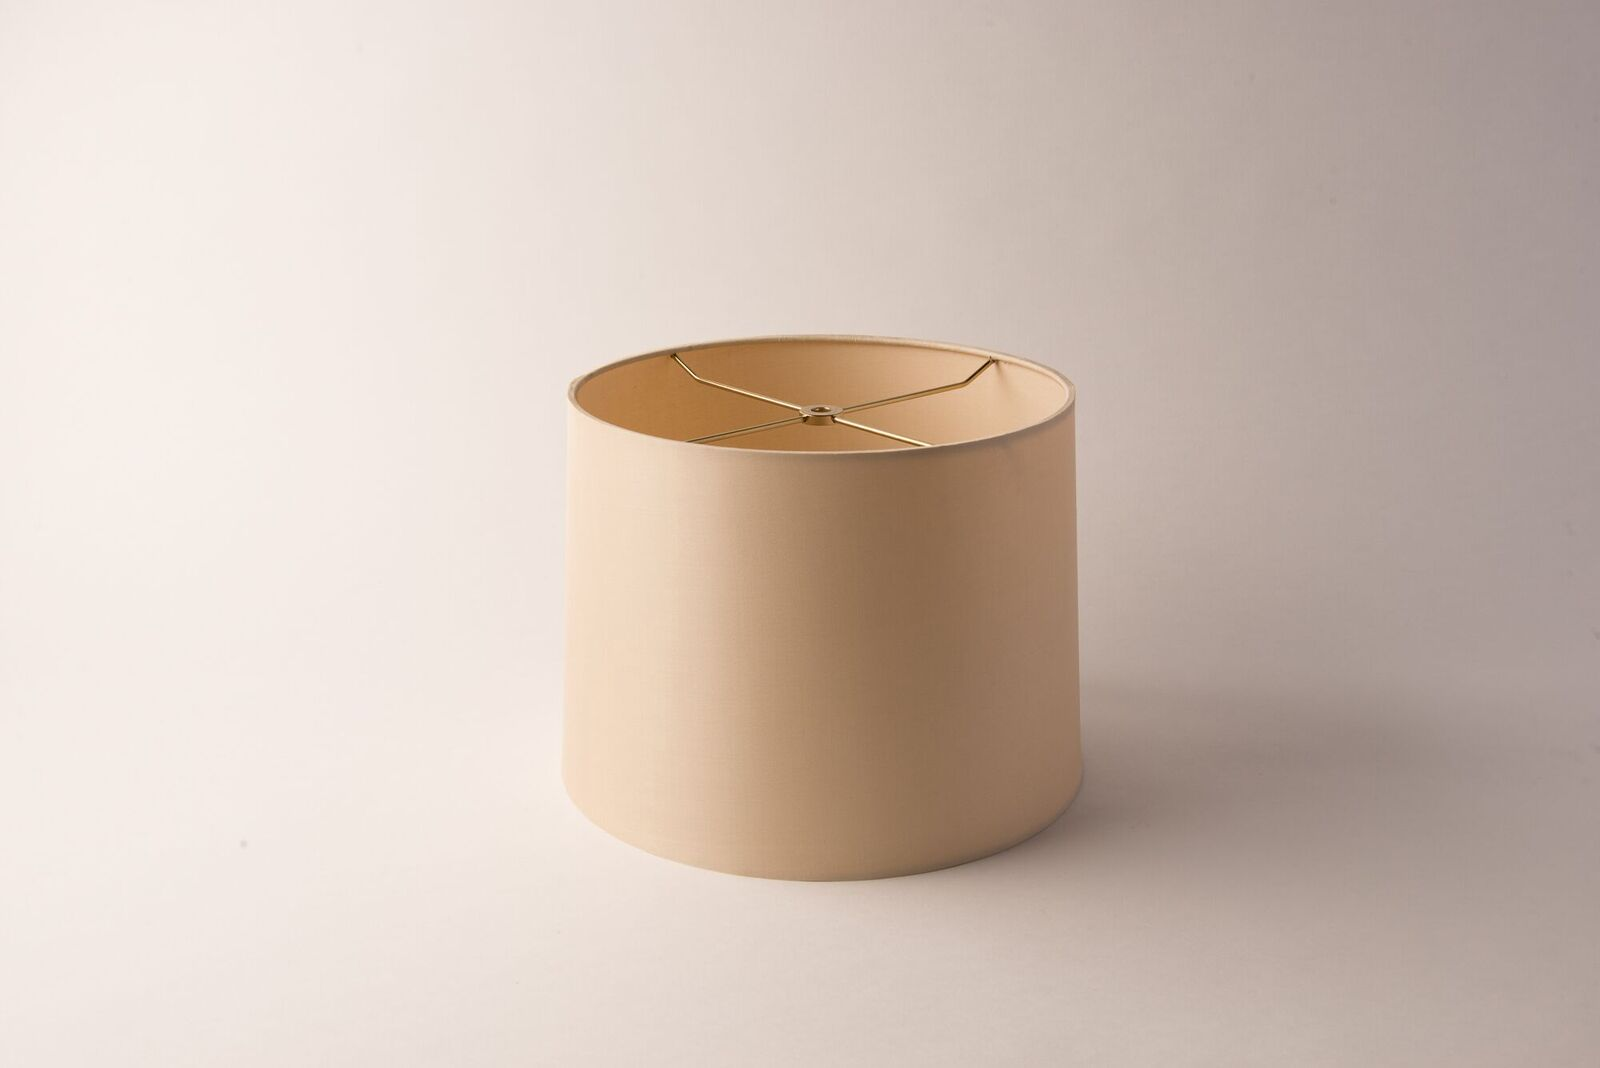 https://www.hotel-lamps.com/resources/assets/images/product_images/Drum_Short_Silk_Gold_Rolled_Edge.jpeg